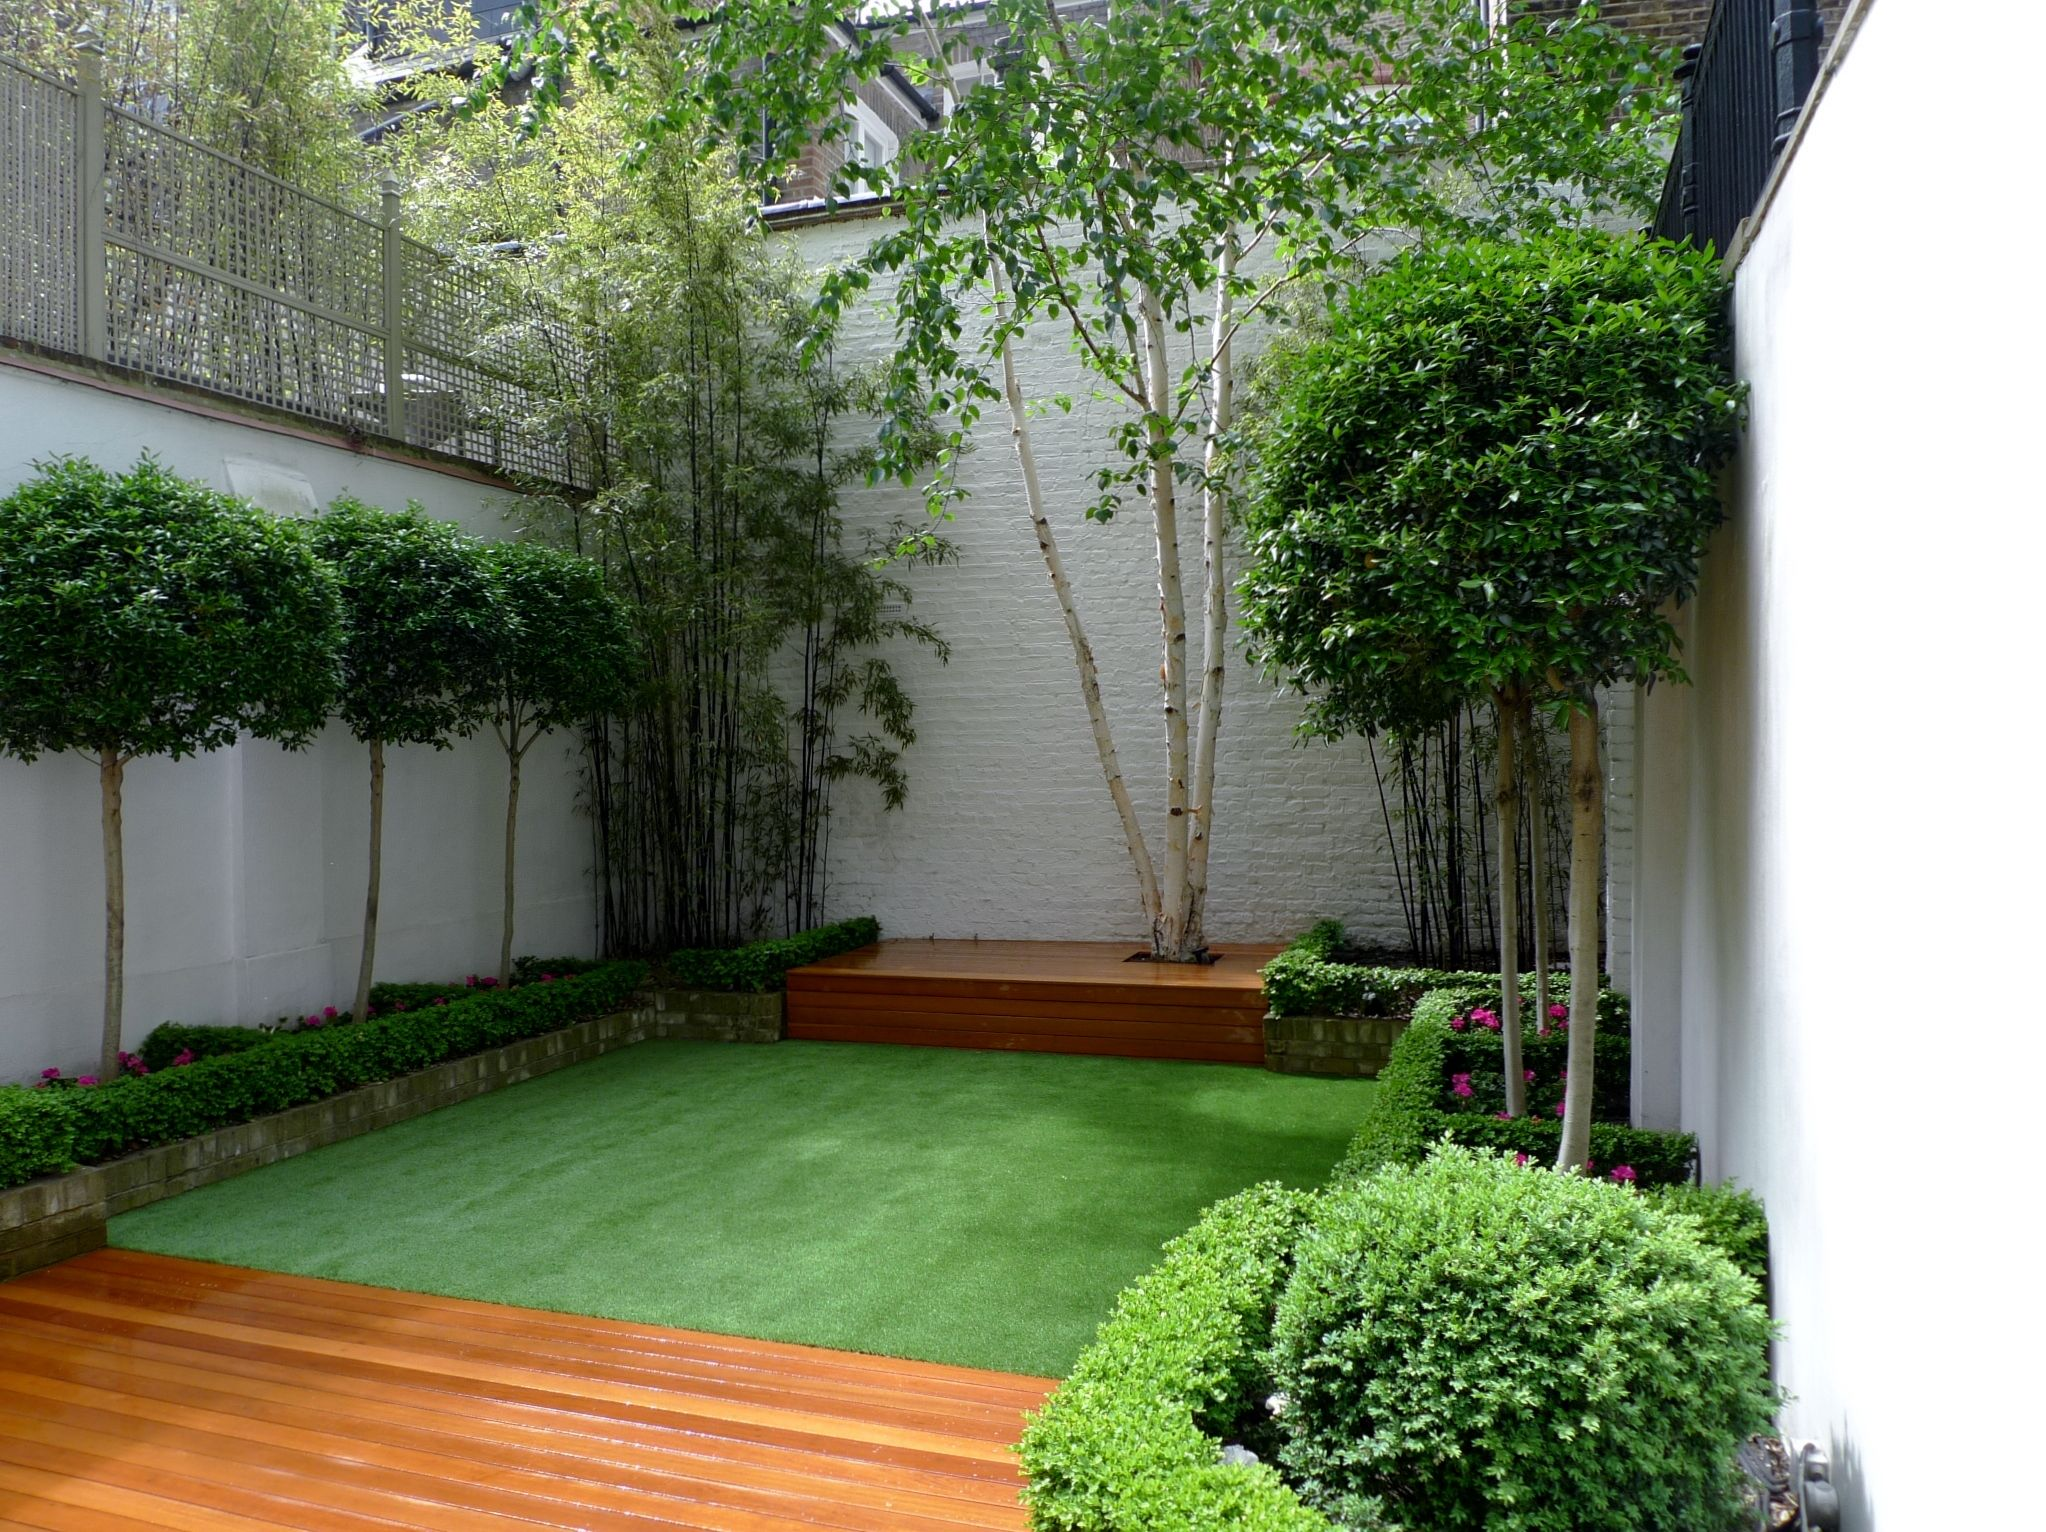 Garden Design With Artificial Grass chelsea garden 2015 design low maintenance artificial grass